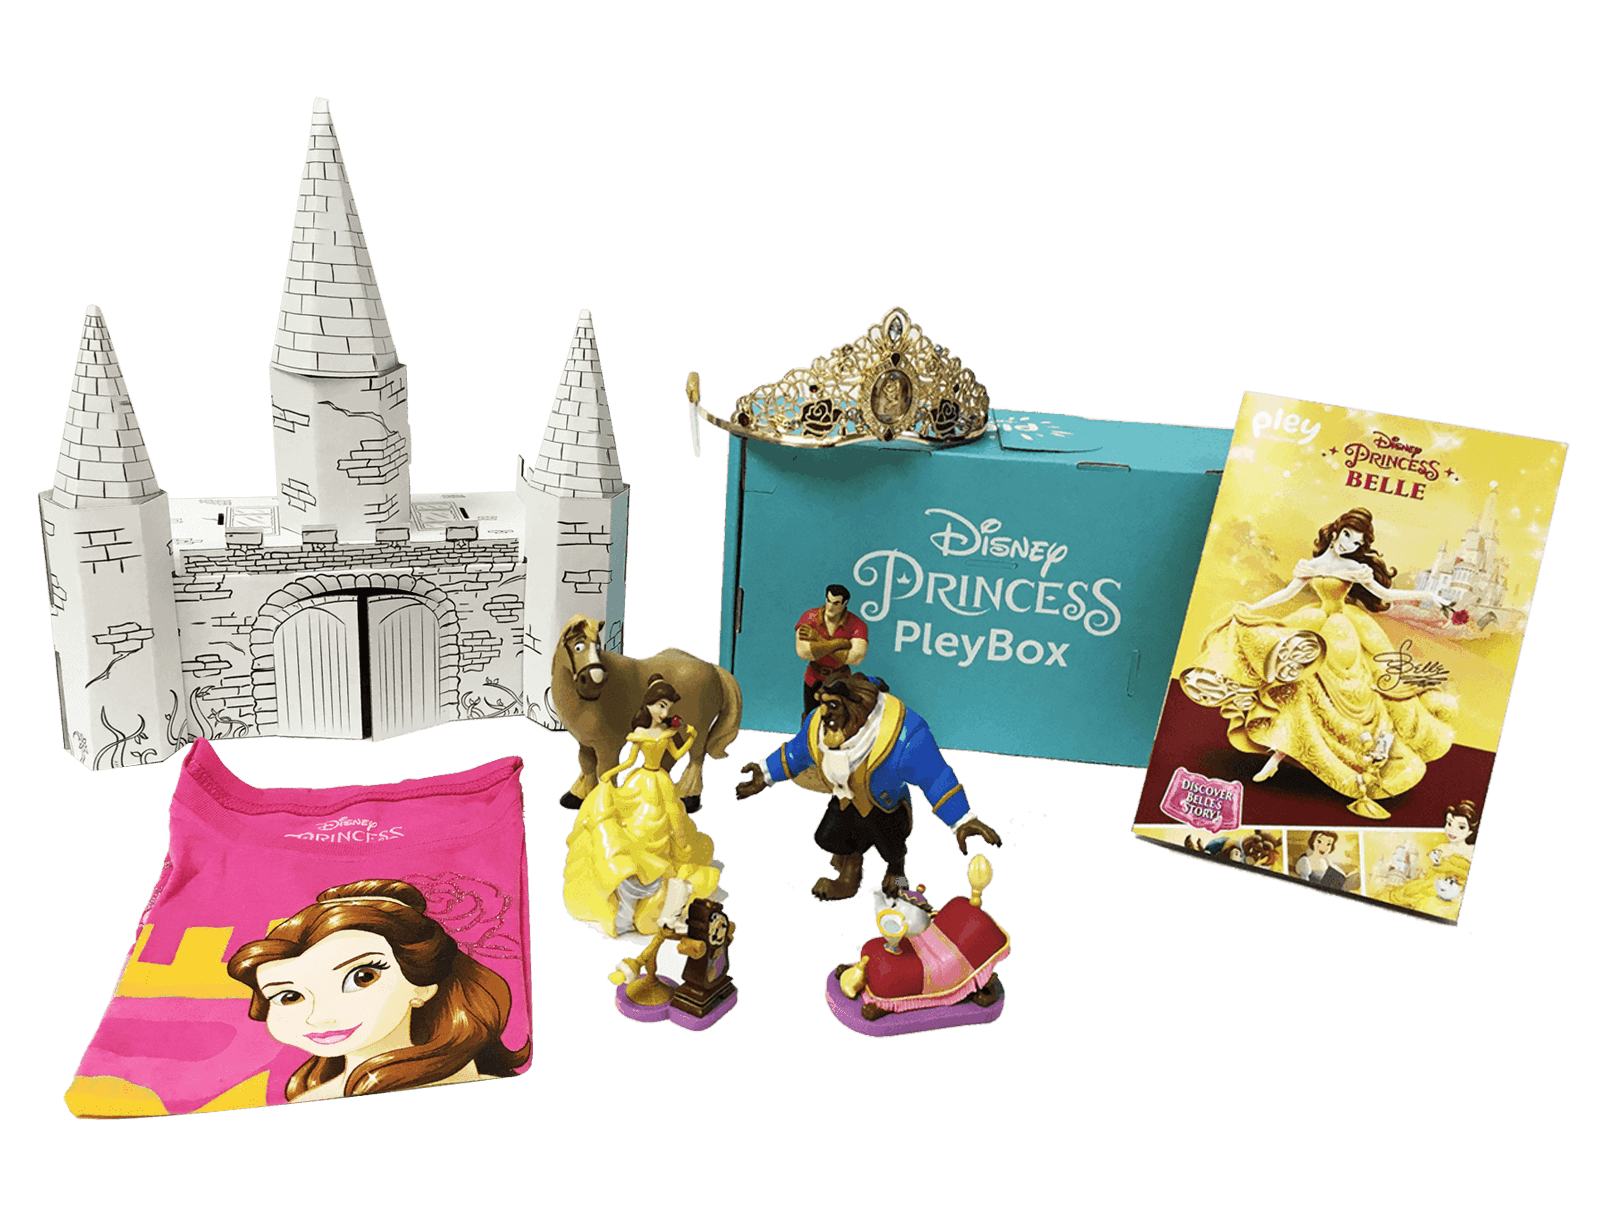 Disney Princess Subscription Coupon: Save 25% on First Box!